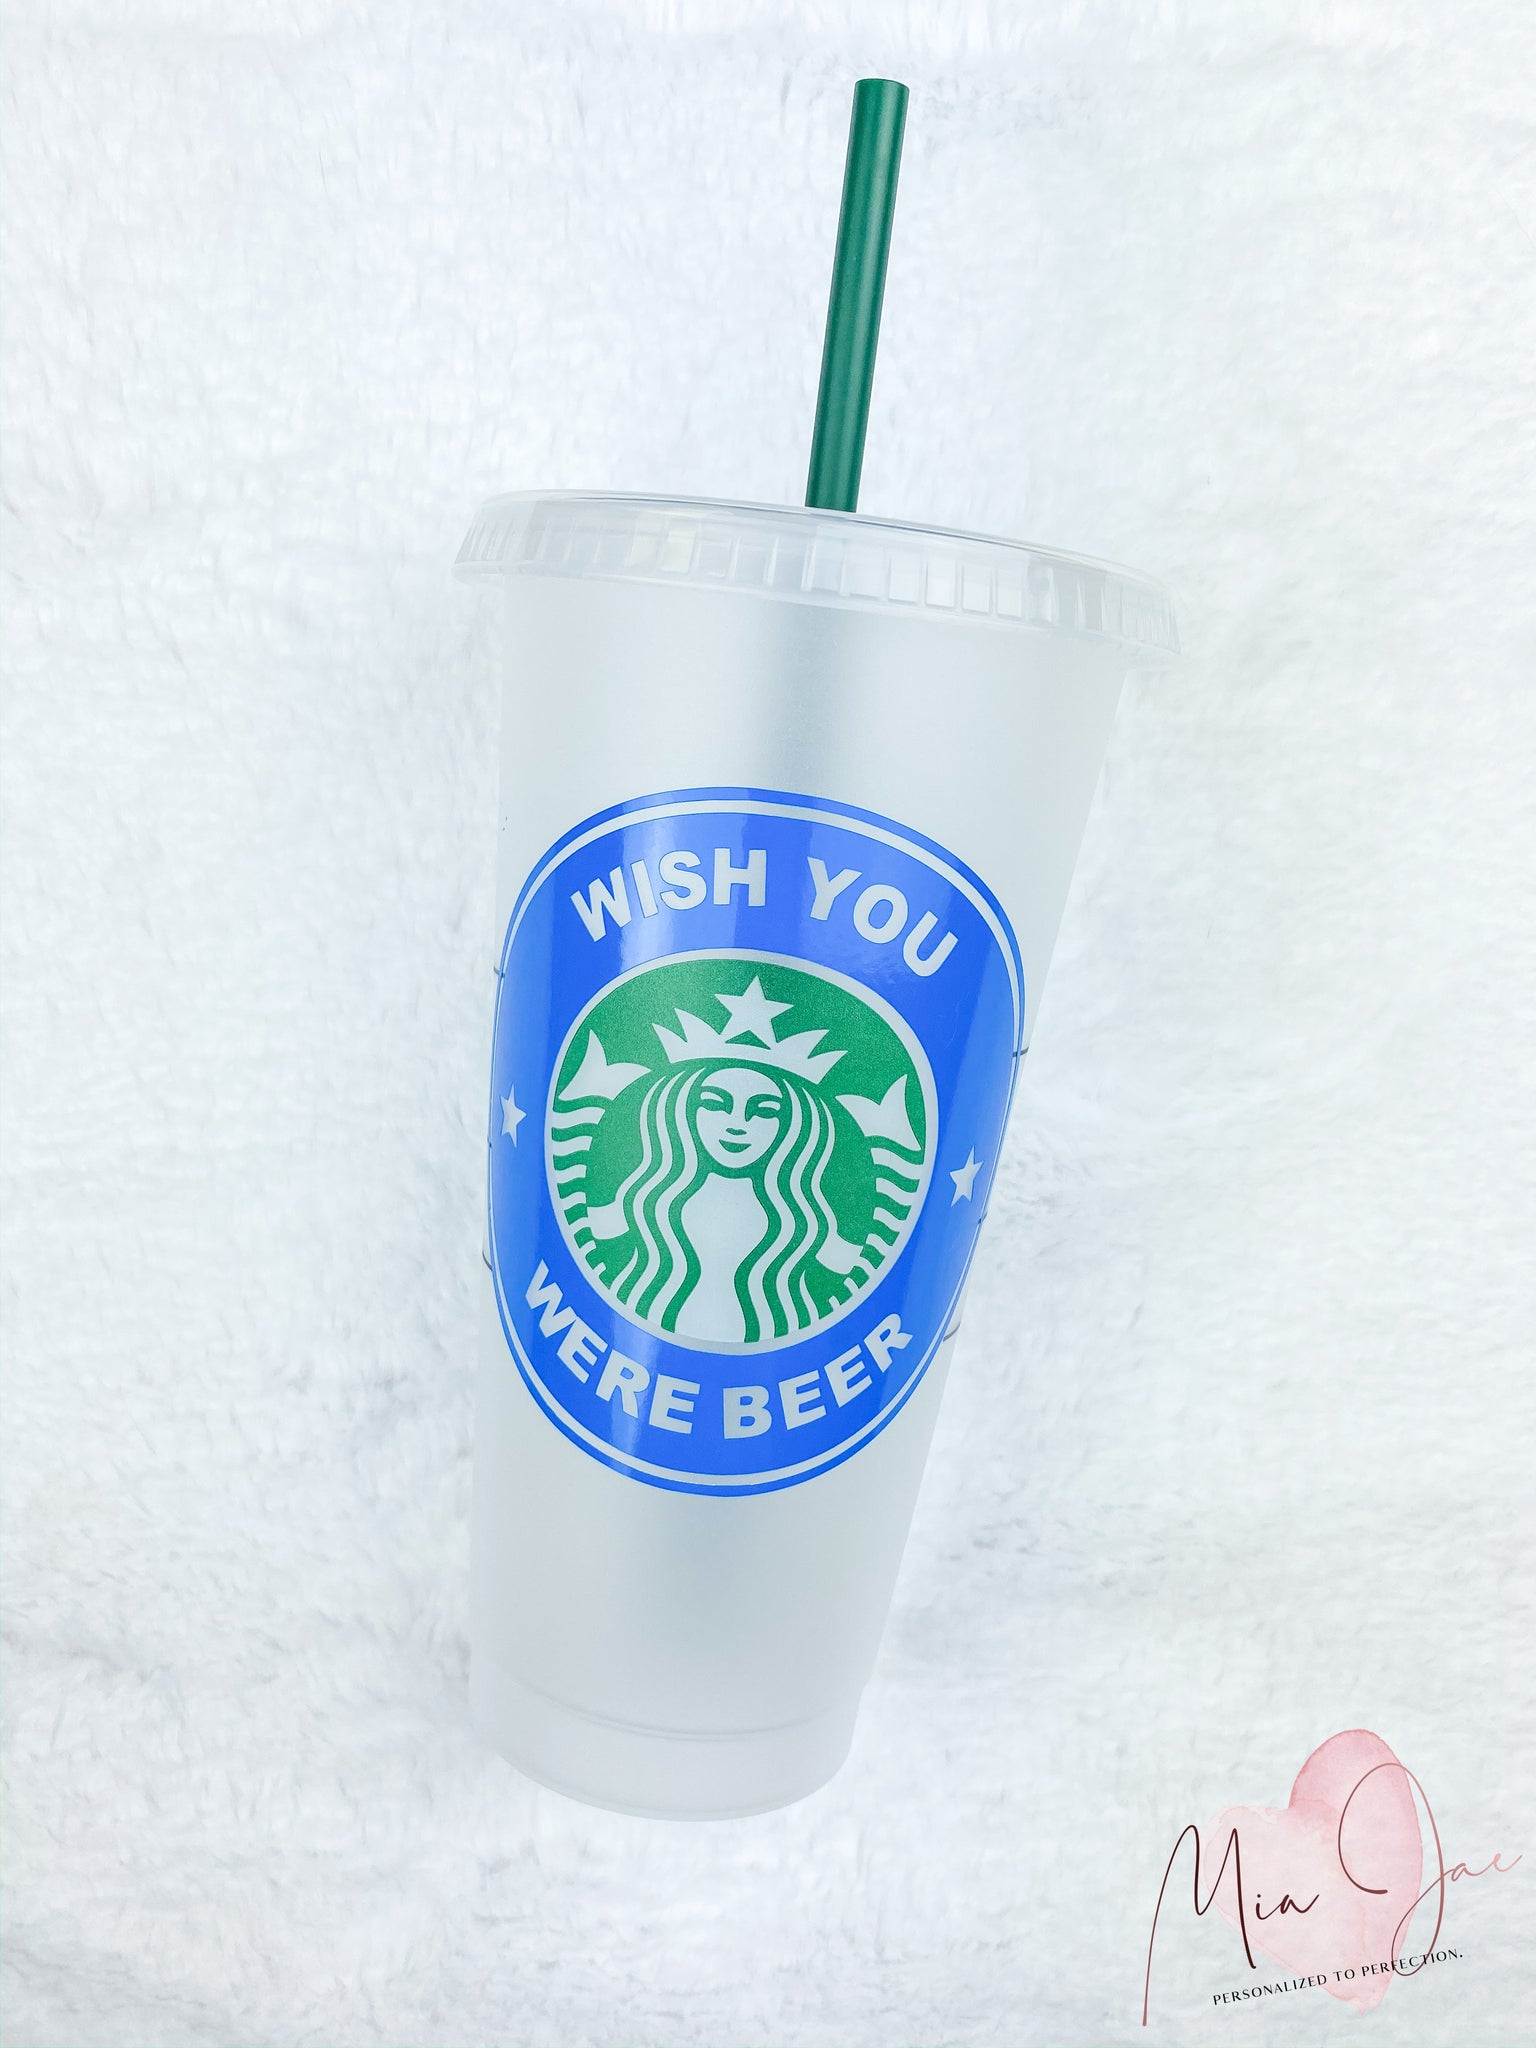 Wish You Were Beer Personalized Cold Cup